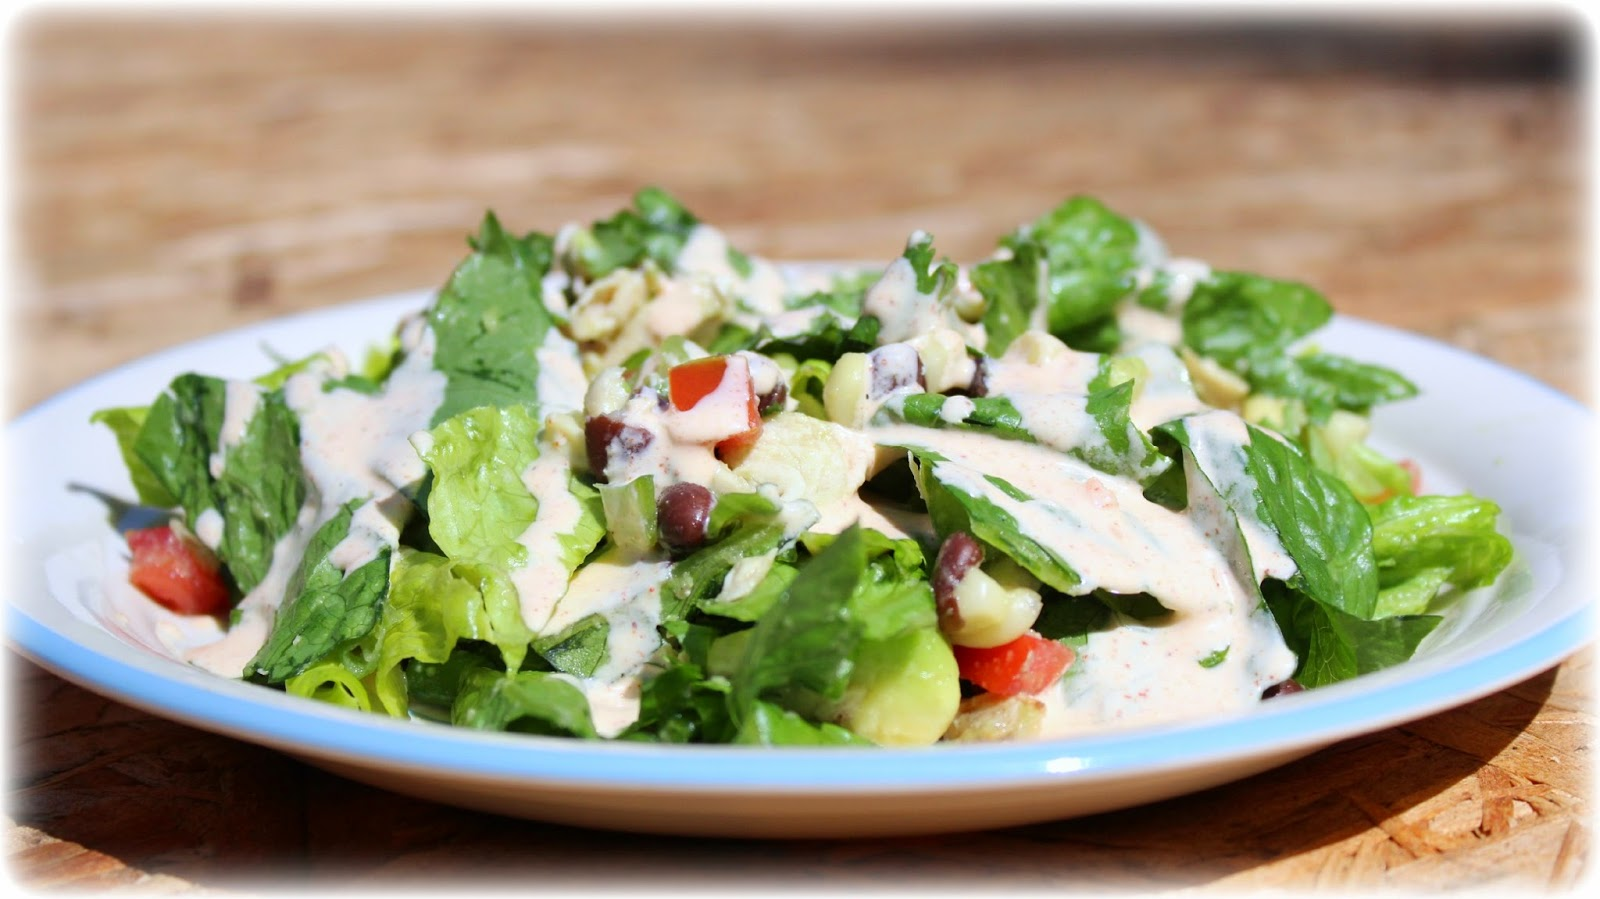 Southwest Chopped Chicken Salad: AJcrazies by AJK